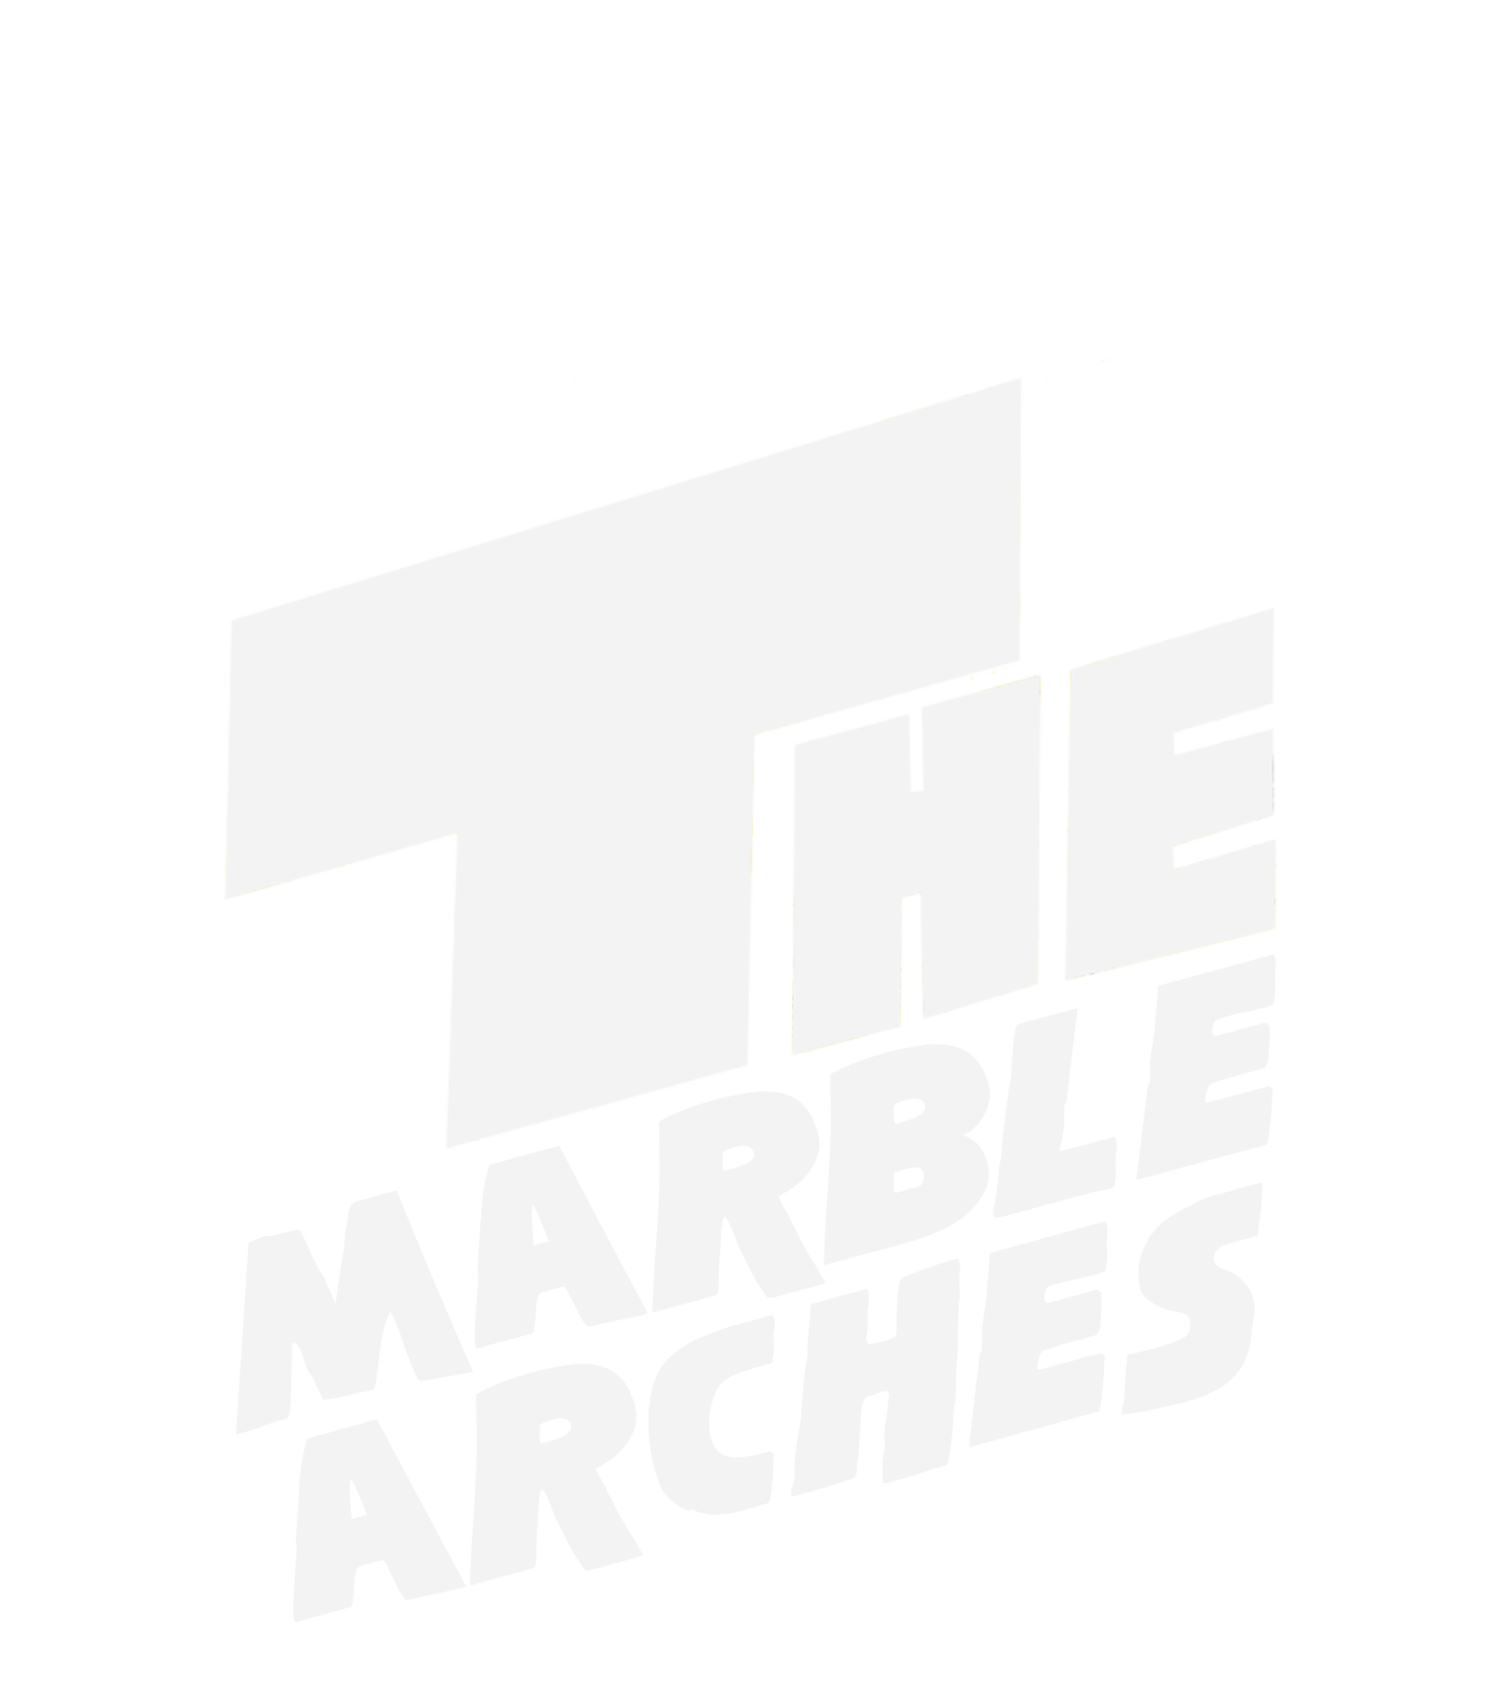 The Marble Arches